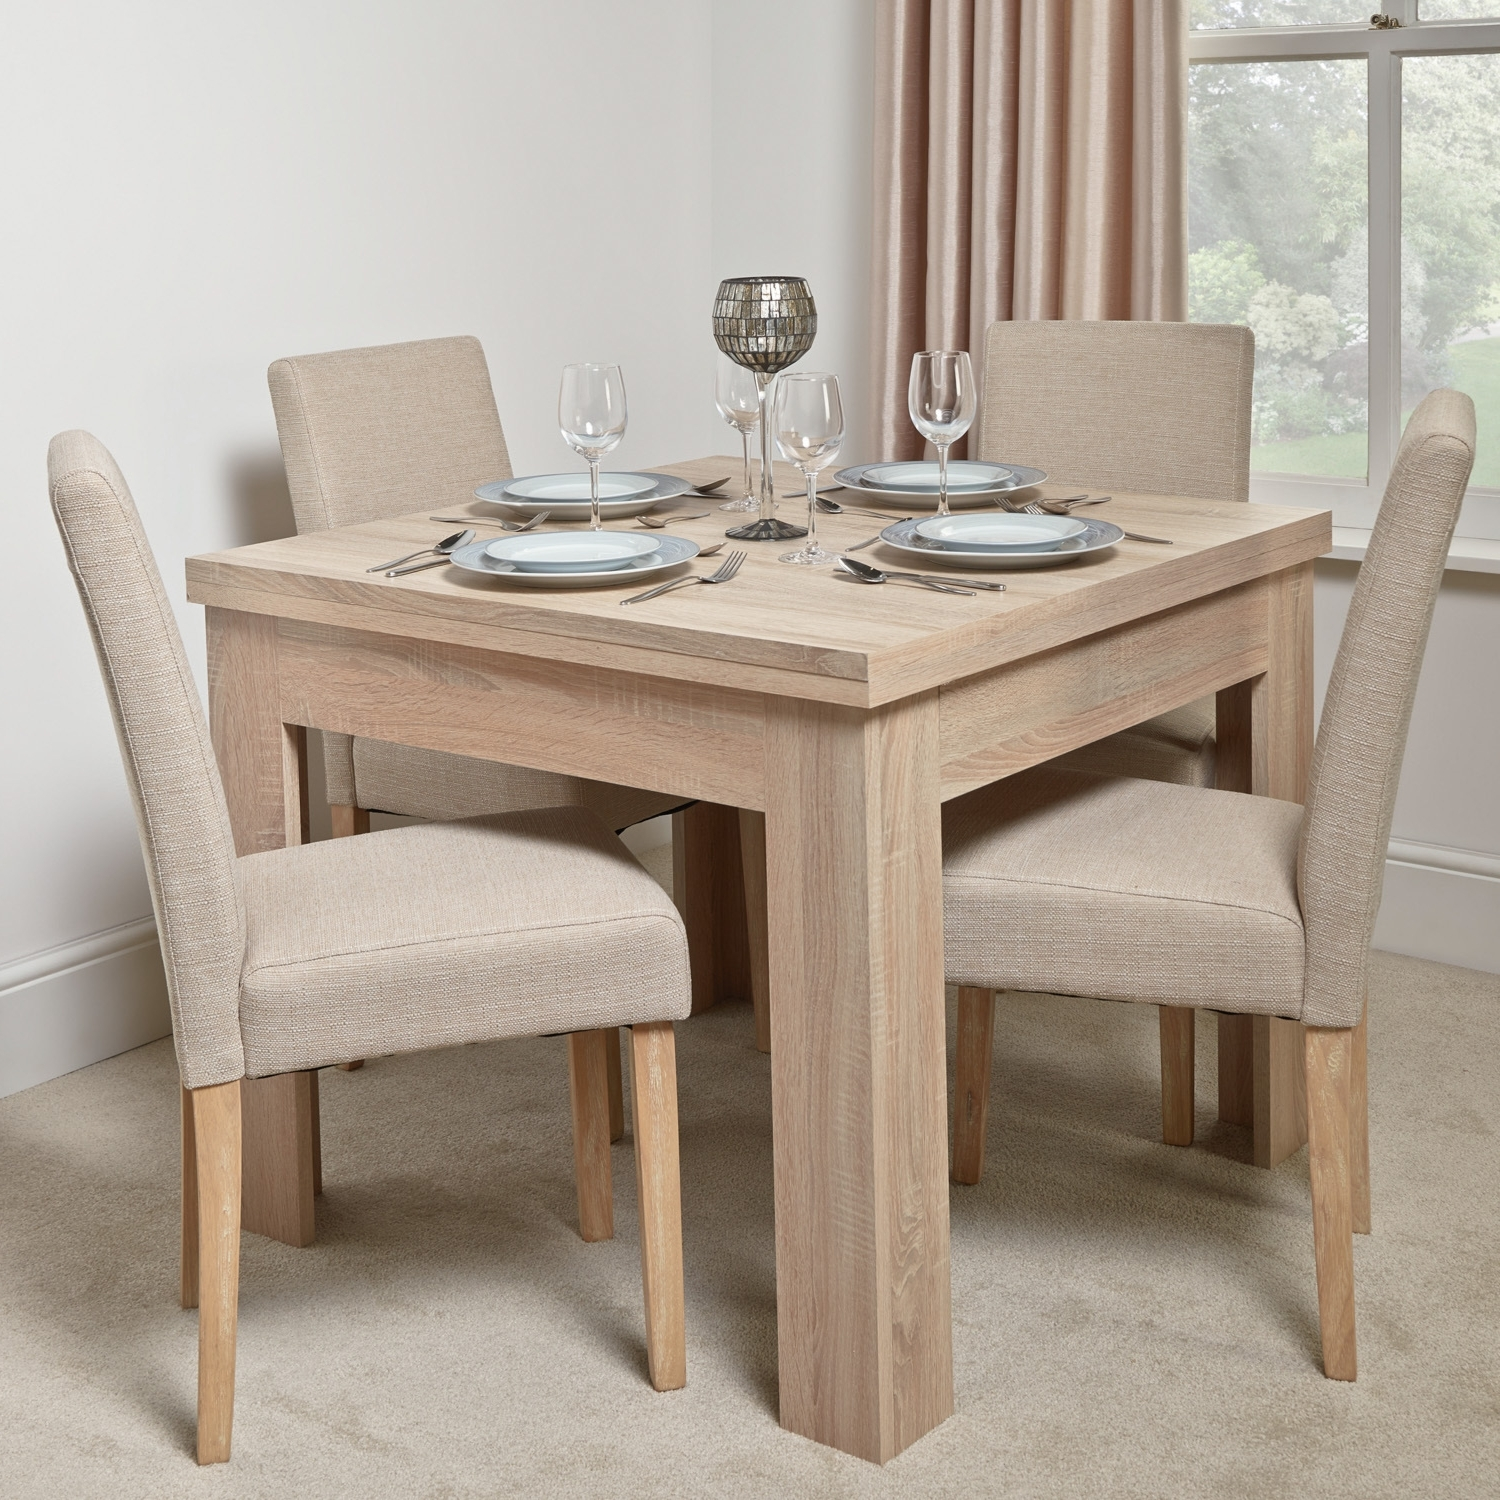 Extendable Dining Tables With 6 Chairs In Famous Calpe Flip Extending Dining Table (View 6 of 25)